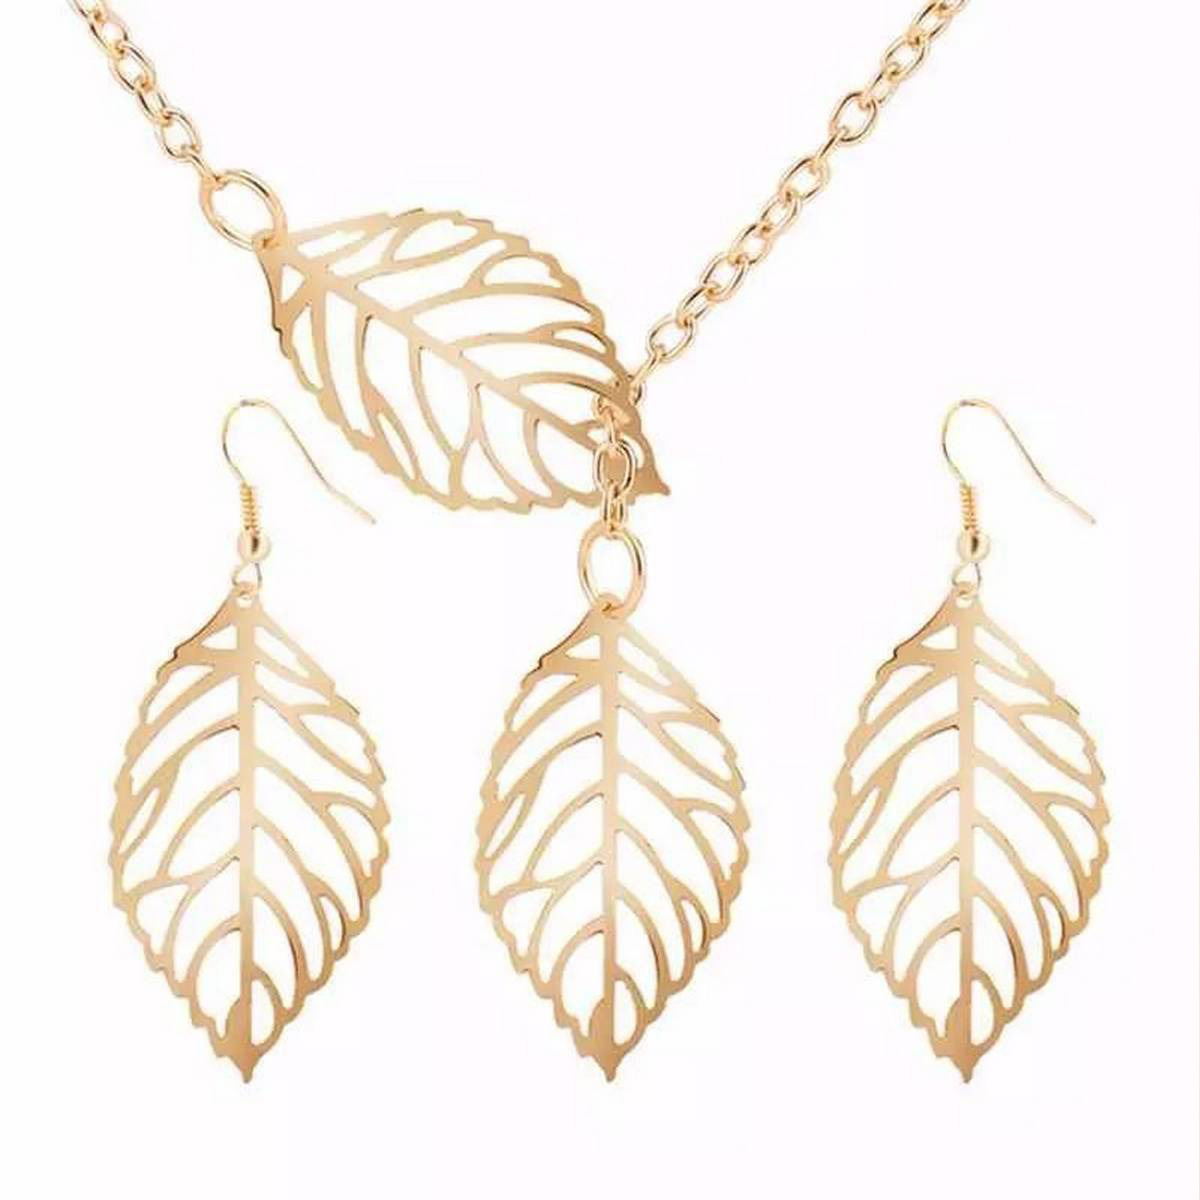 New Fashion Trend Double Leaf Golden Necklace and Earrings Set Jewelry Party Gift